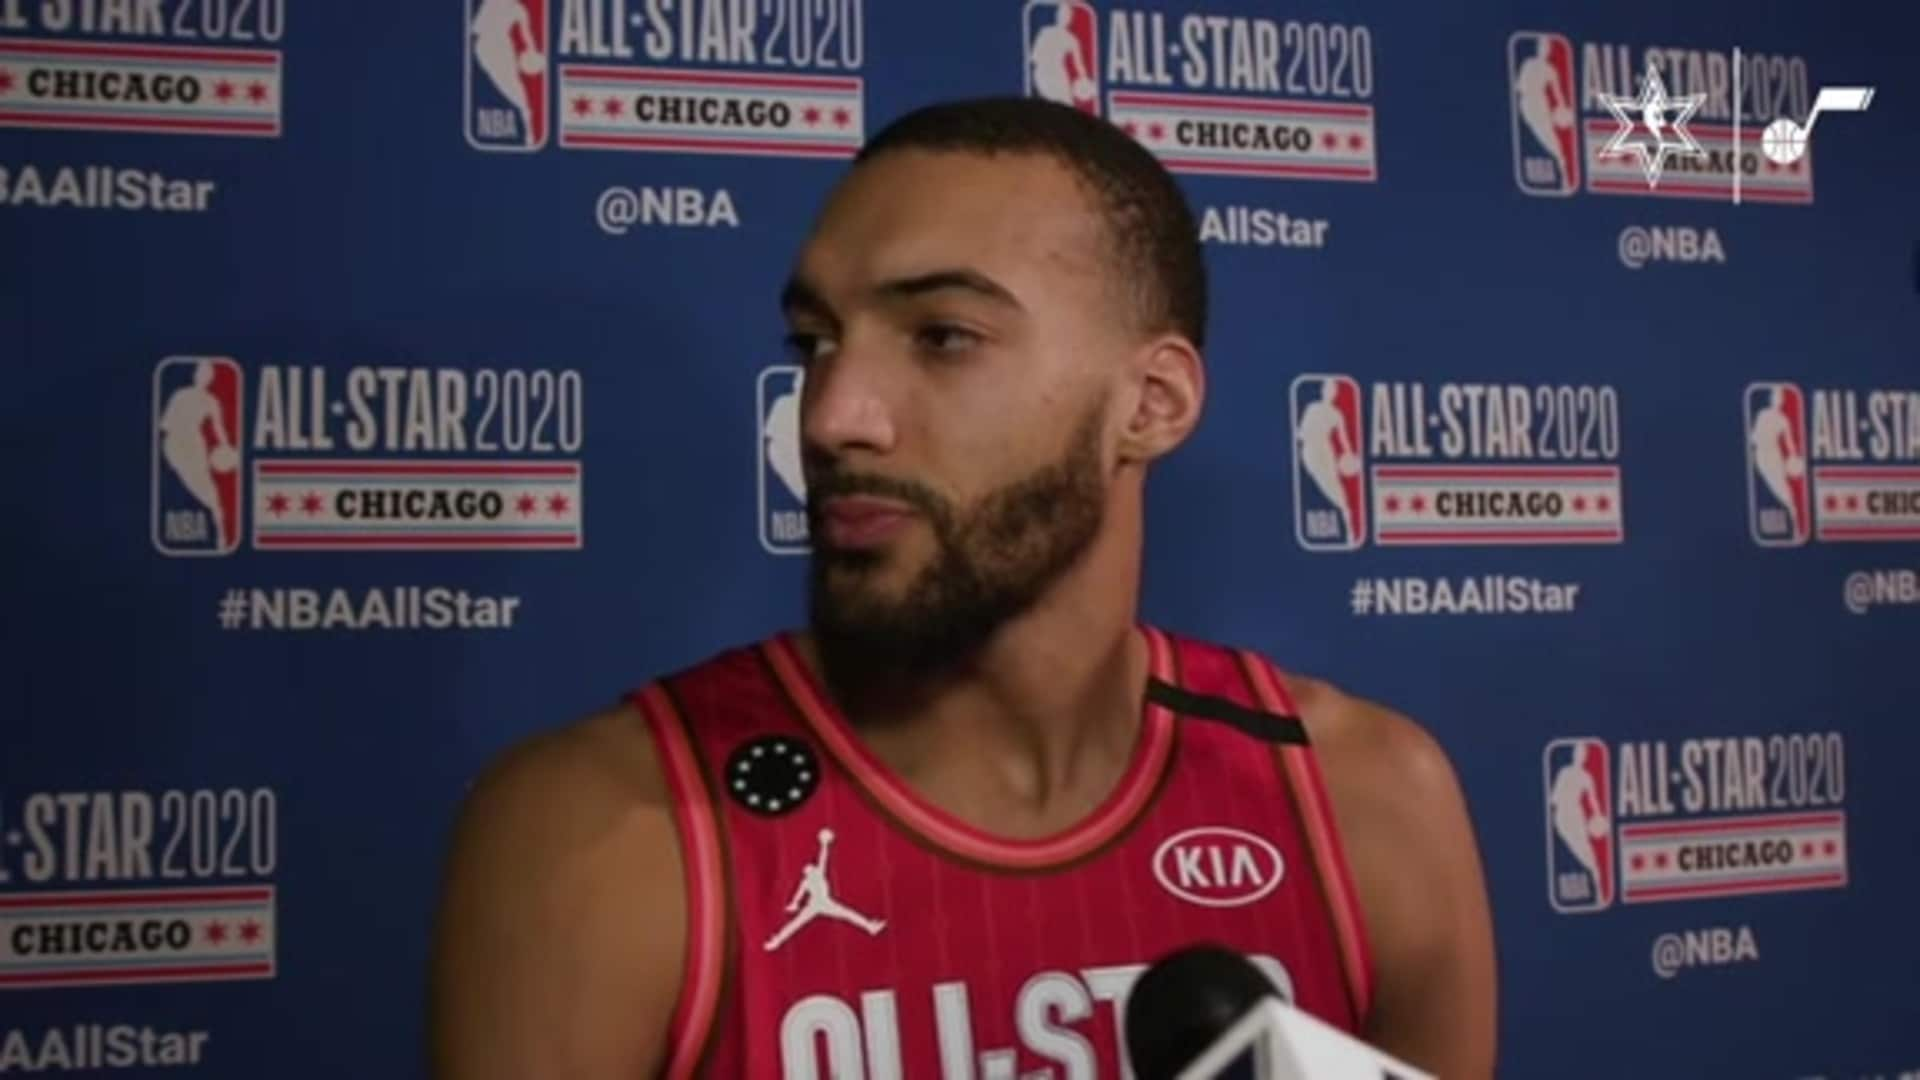 All-Star Postgame Interview: Rudy Gobert